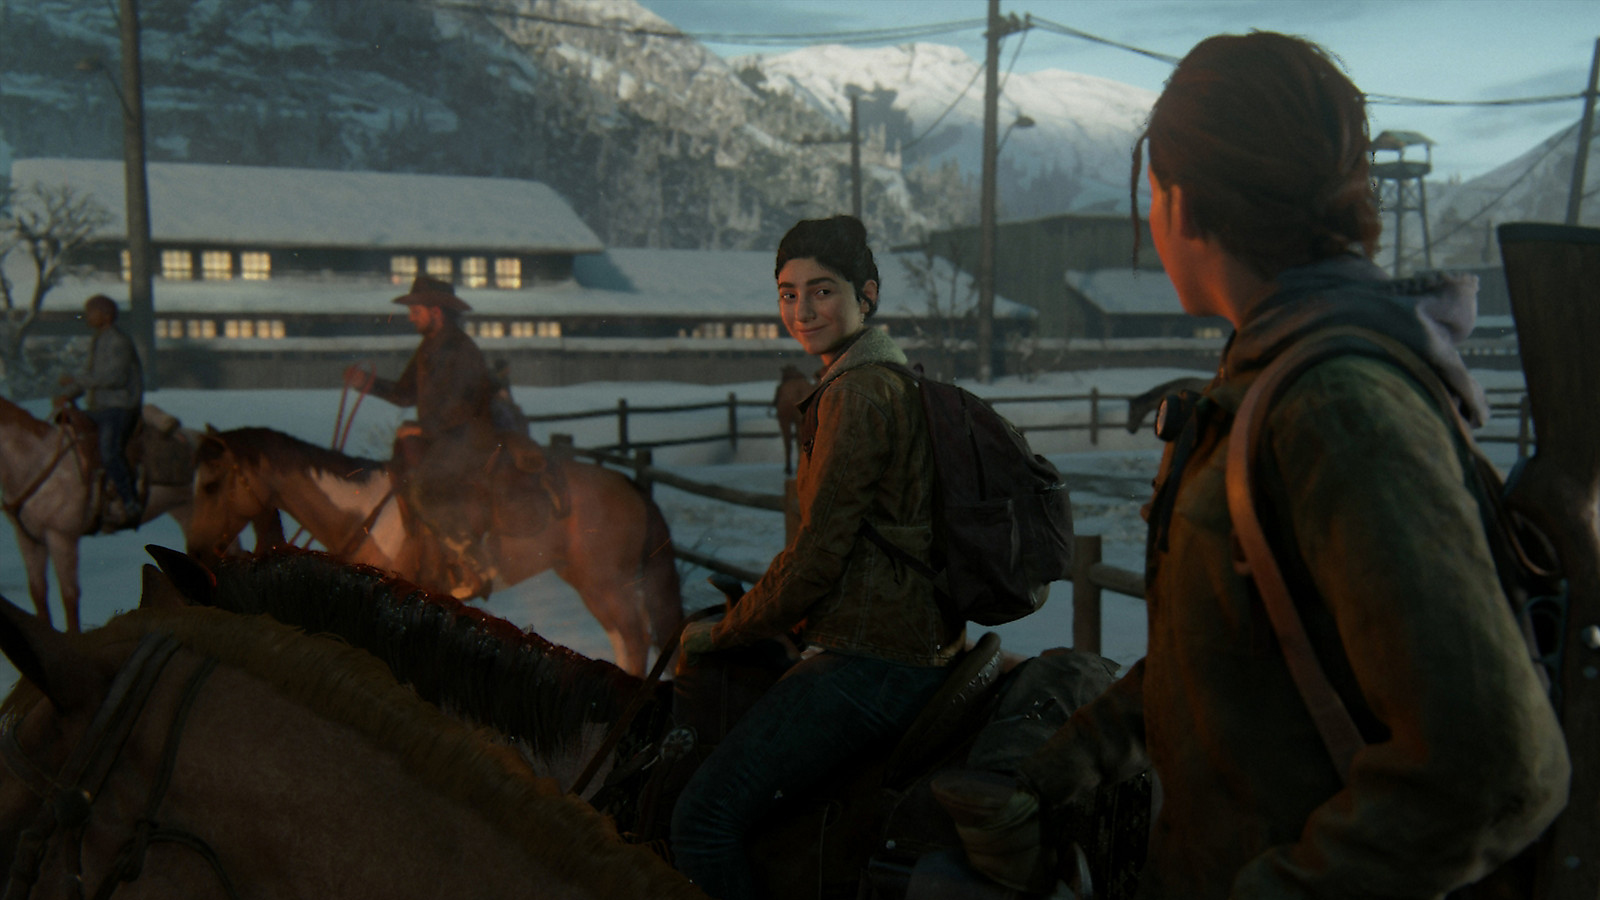 Ellie de The Last of Us 2 a caballo